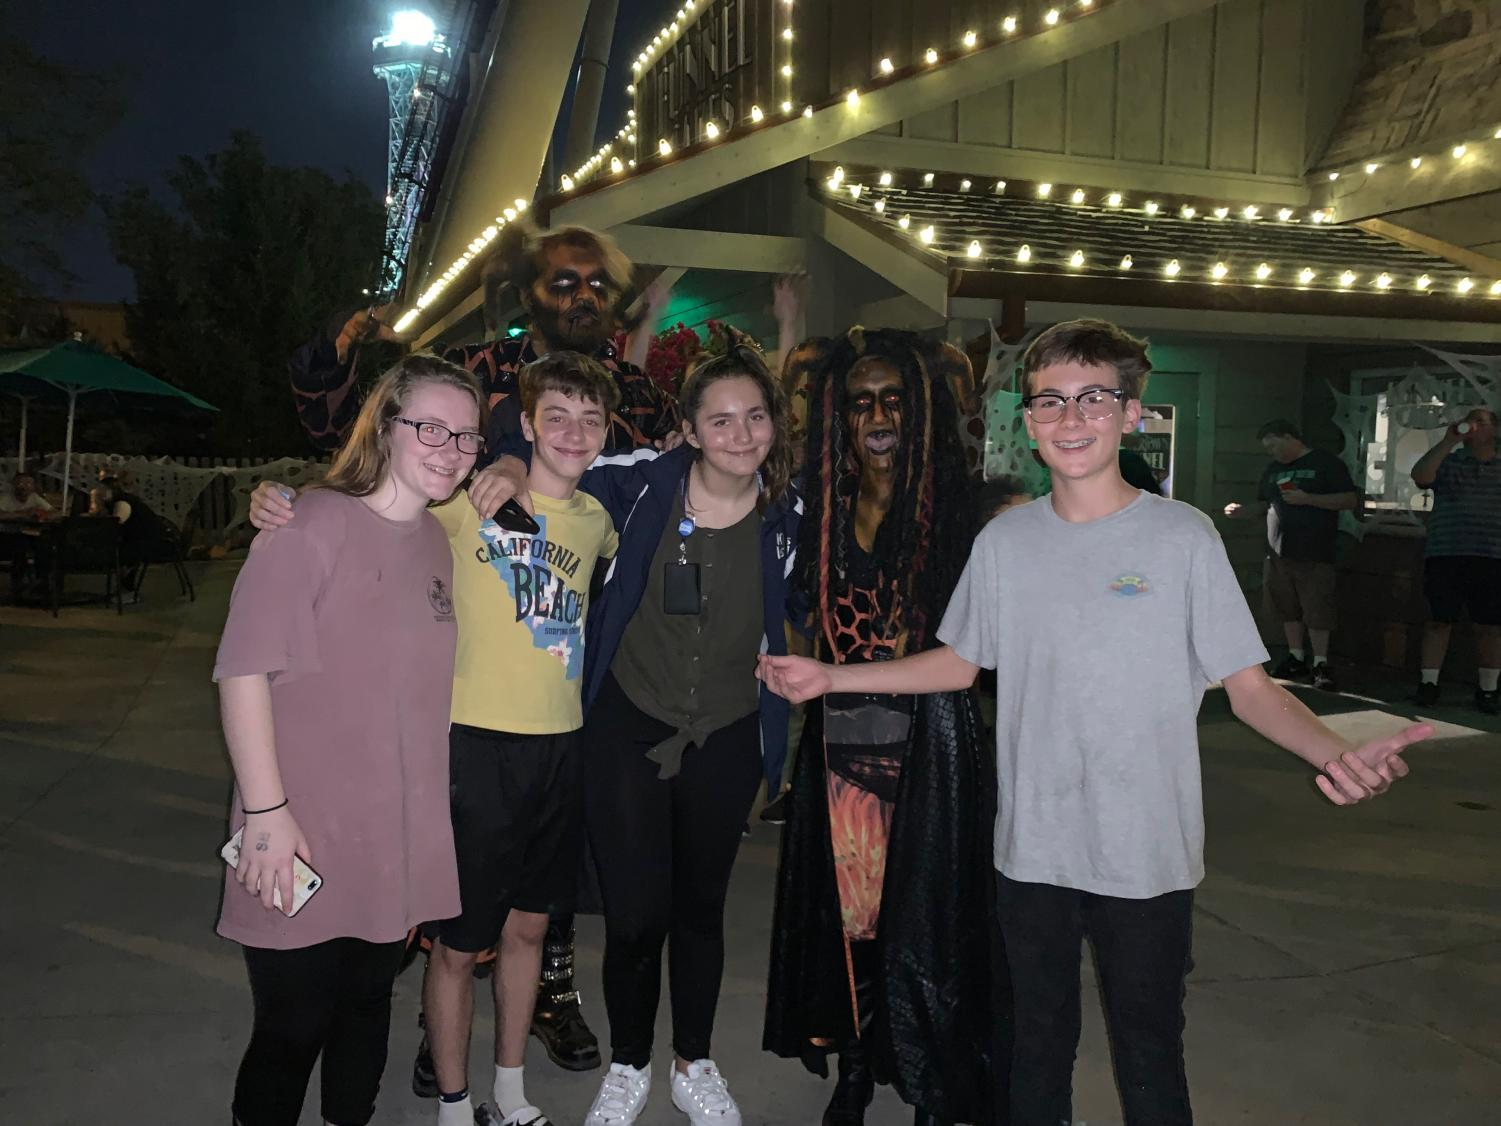 """HALLOWEEN HAUNT. From left to right, Catherine Miller, 9, Noam Rochman, 10, Leslie Nordman, 9, and Corwin McAvoy, 9, are pictured with some spooky monsters at Kings Island for Haunt. They are avid-haunted house lovers and all hang out together to enjoy the Halloween season. She loves the """"rush of excitement"""" said Nordman."""